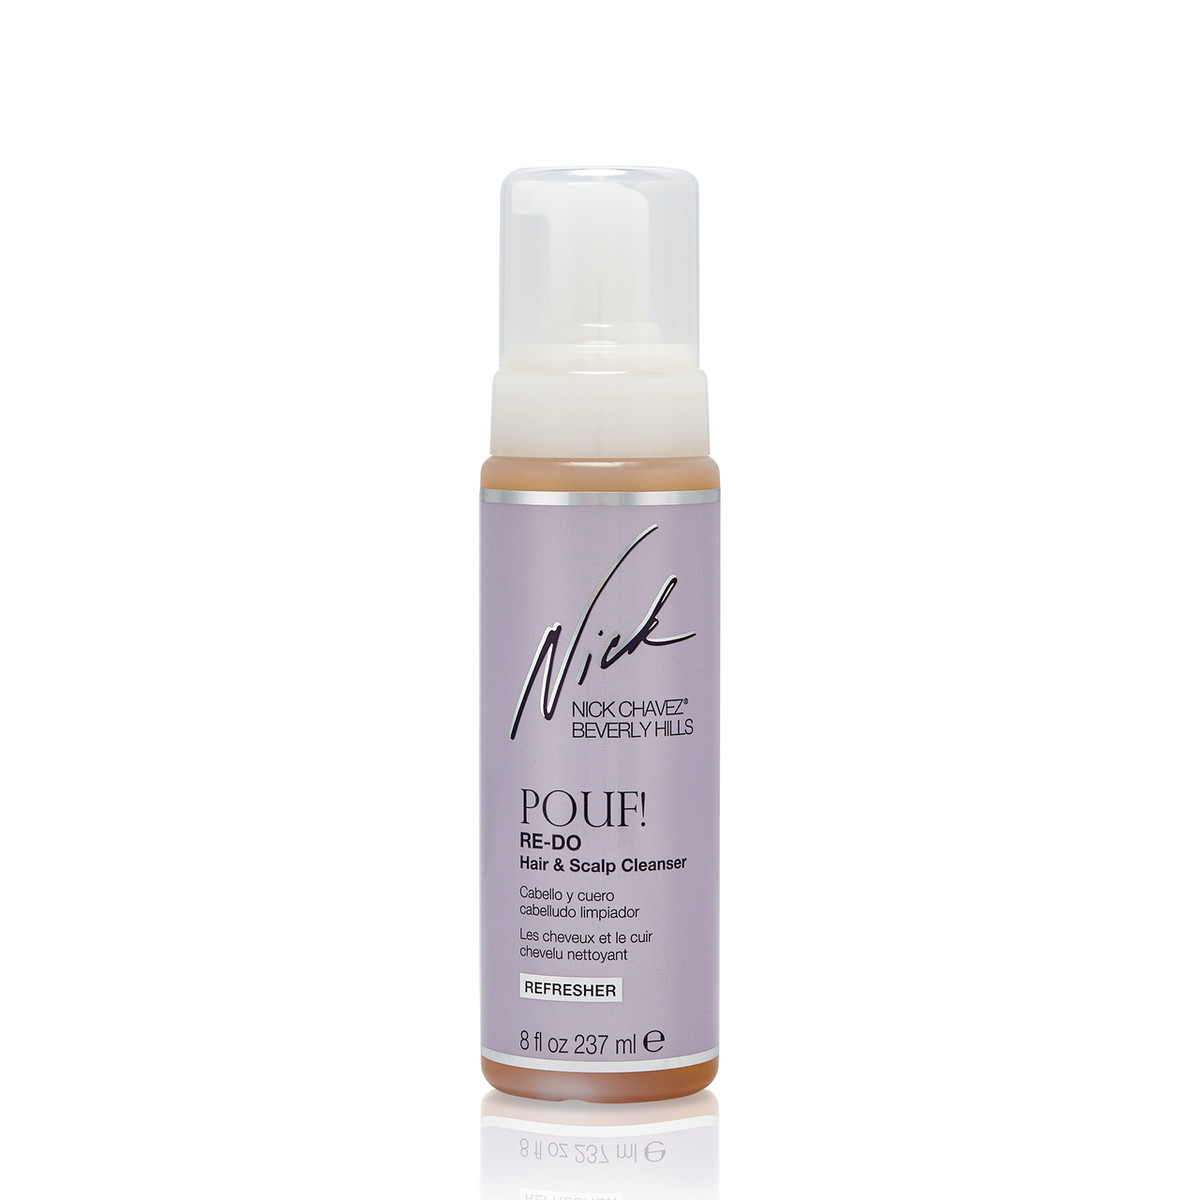 Pouf! Re-Do Hair & Scalp Cleanser 8oz